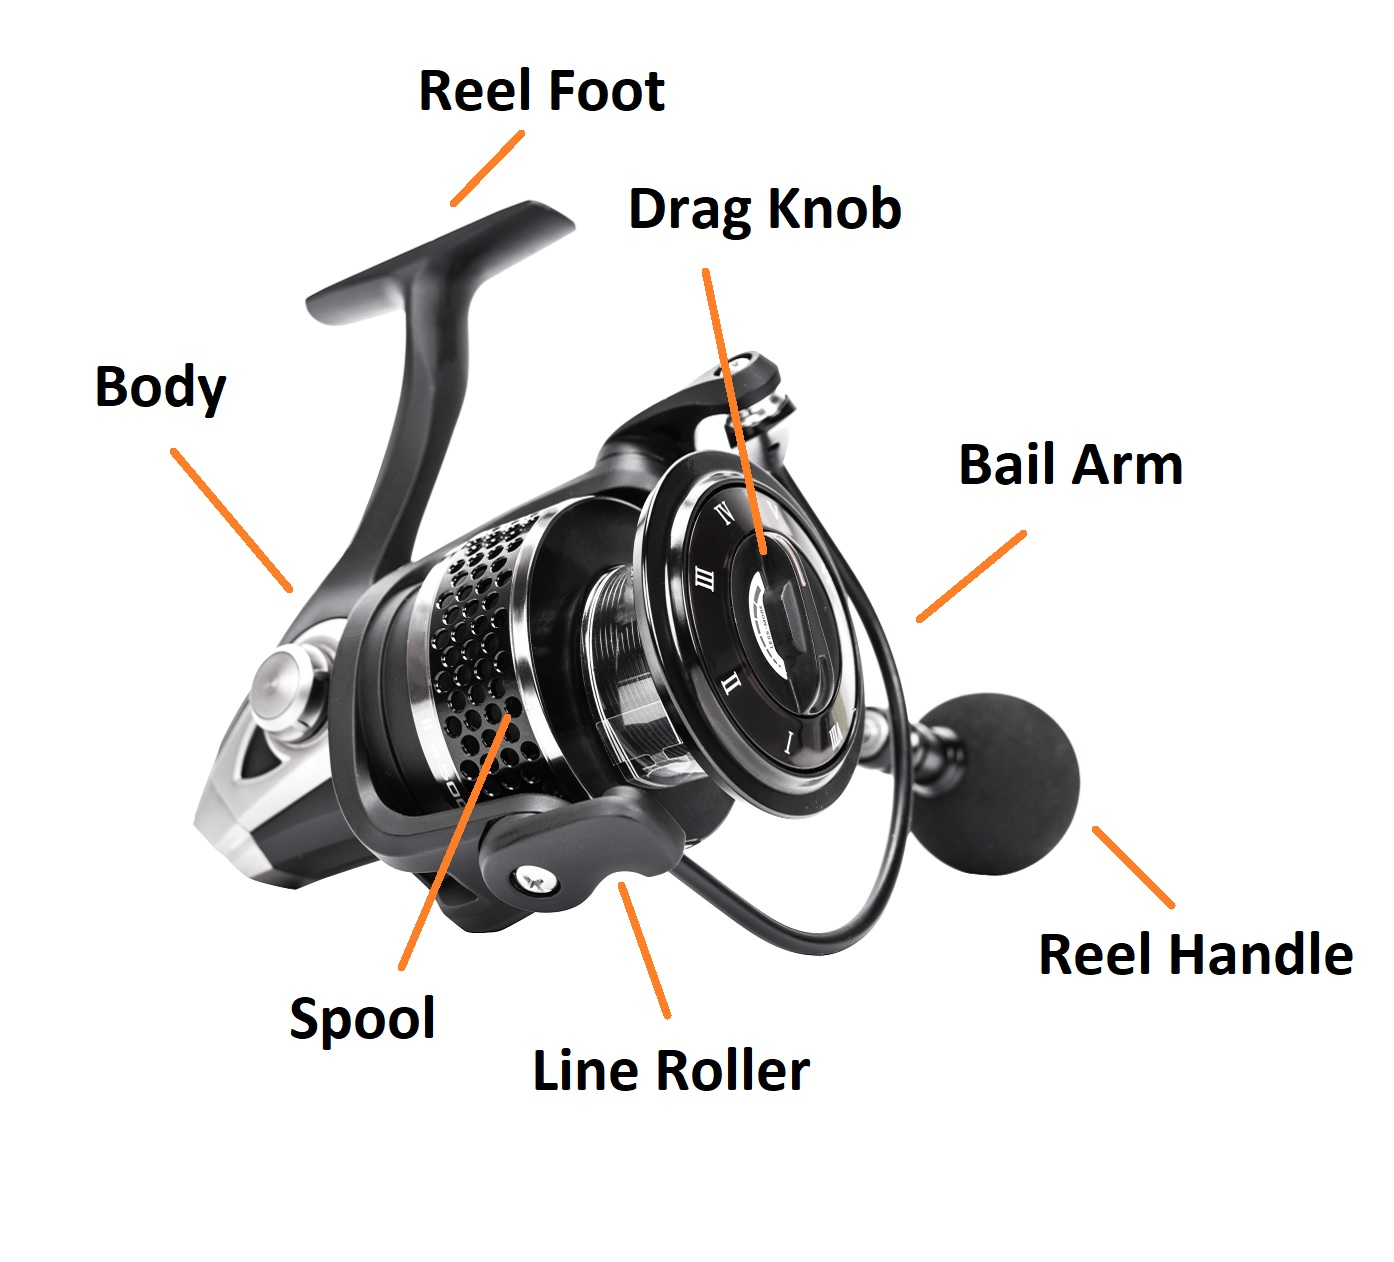 Different parts and mechanics of a spinning reel.